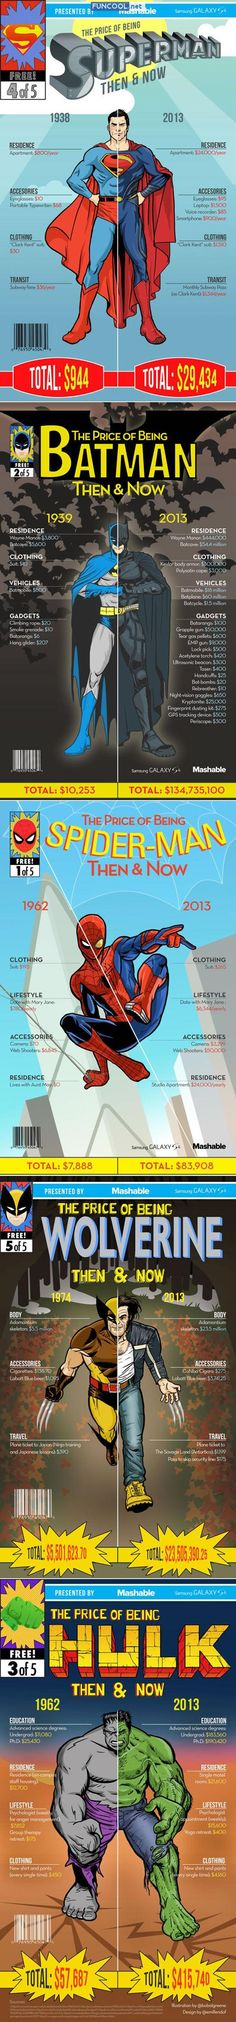 Super heroes (Skyrocketing cost of doing good in the world of super heroes).